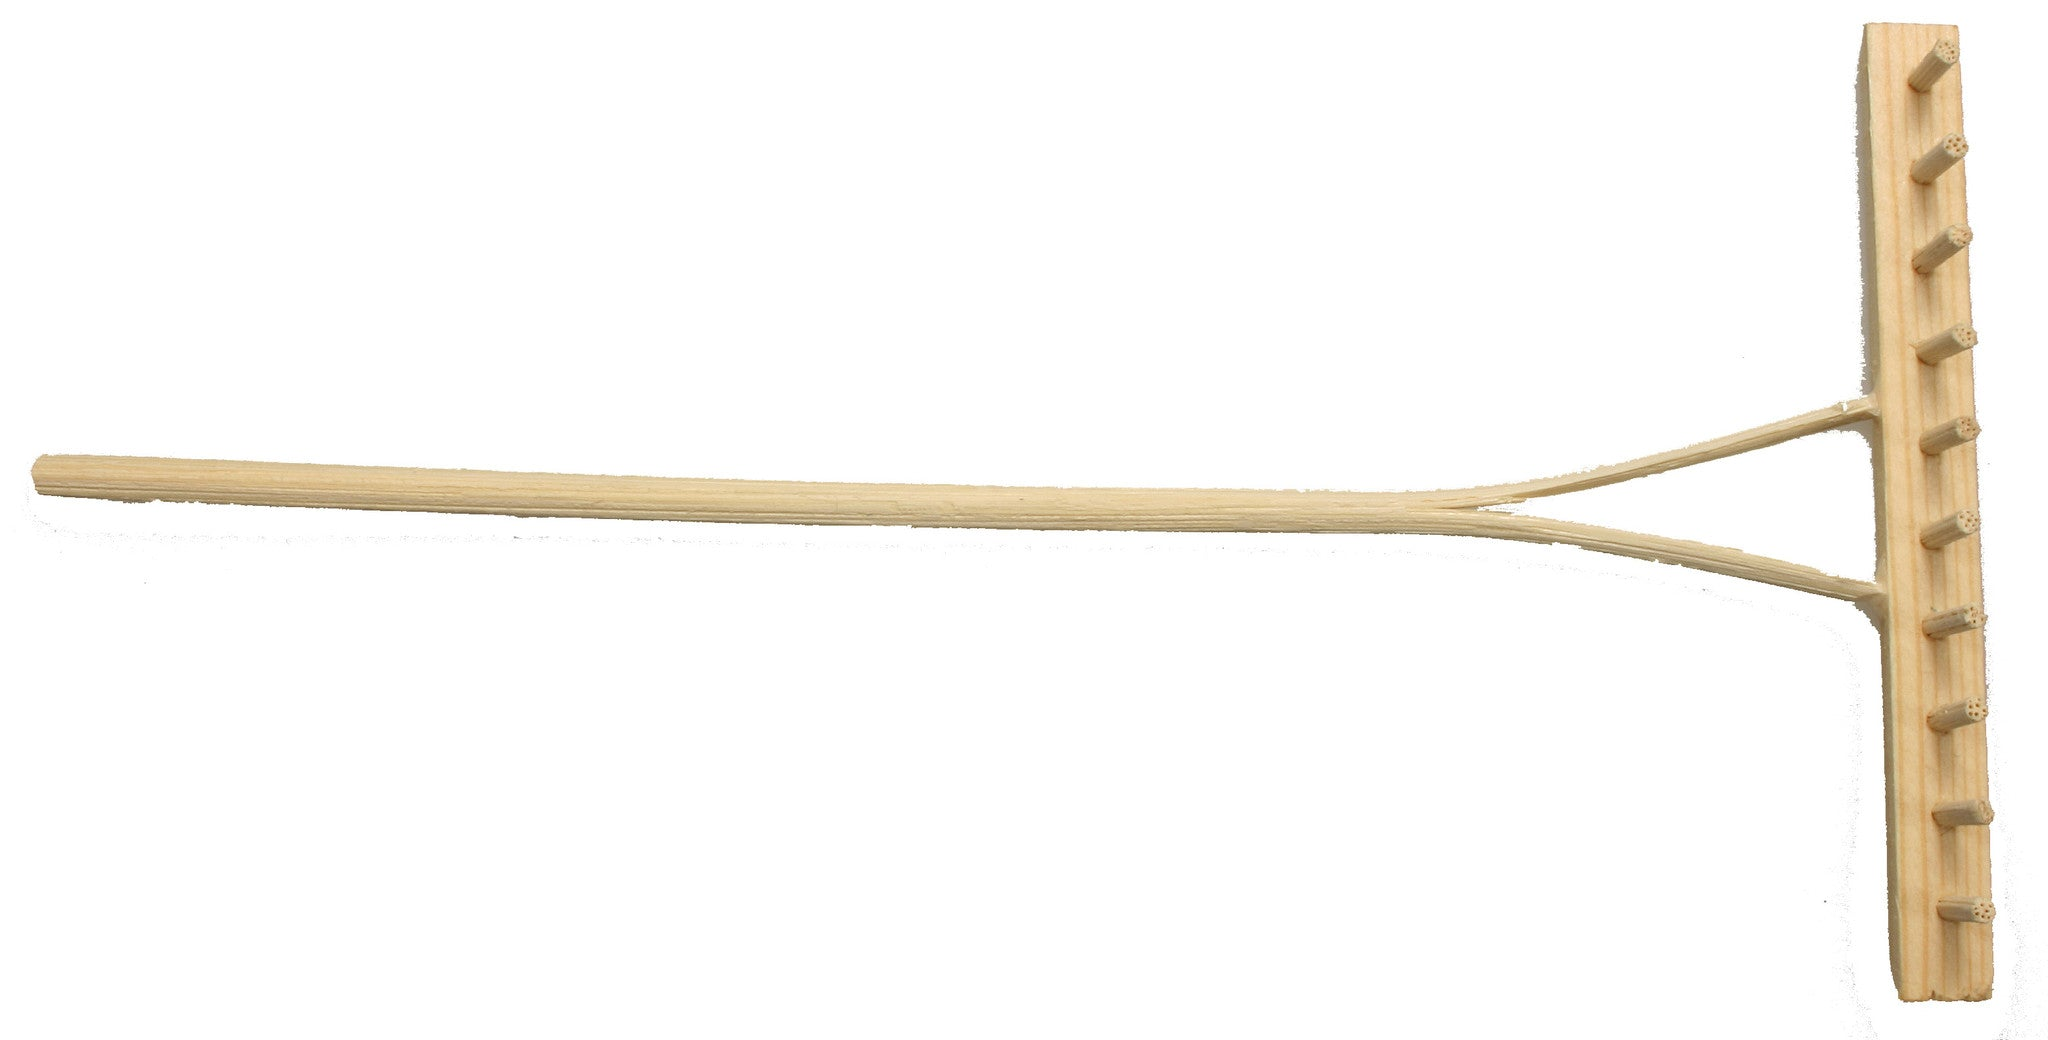 "Wooden Rake - 4-1/4"" long"